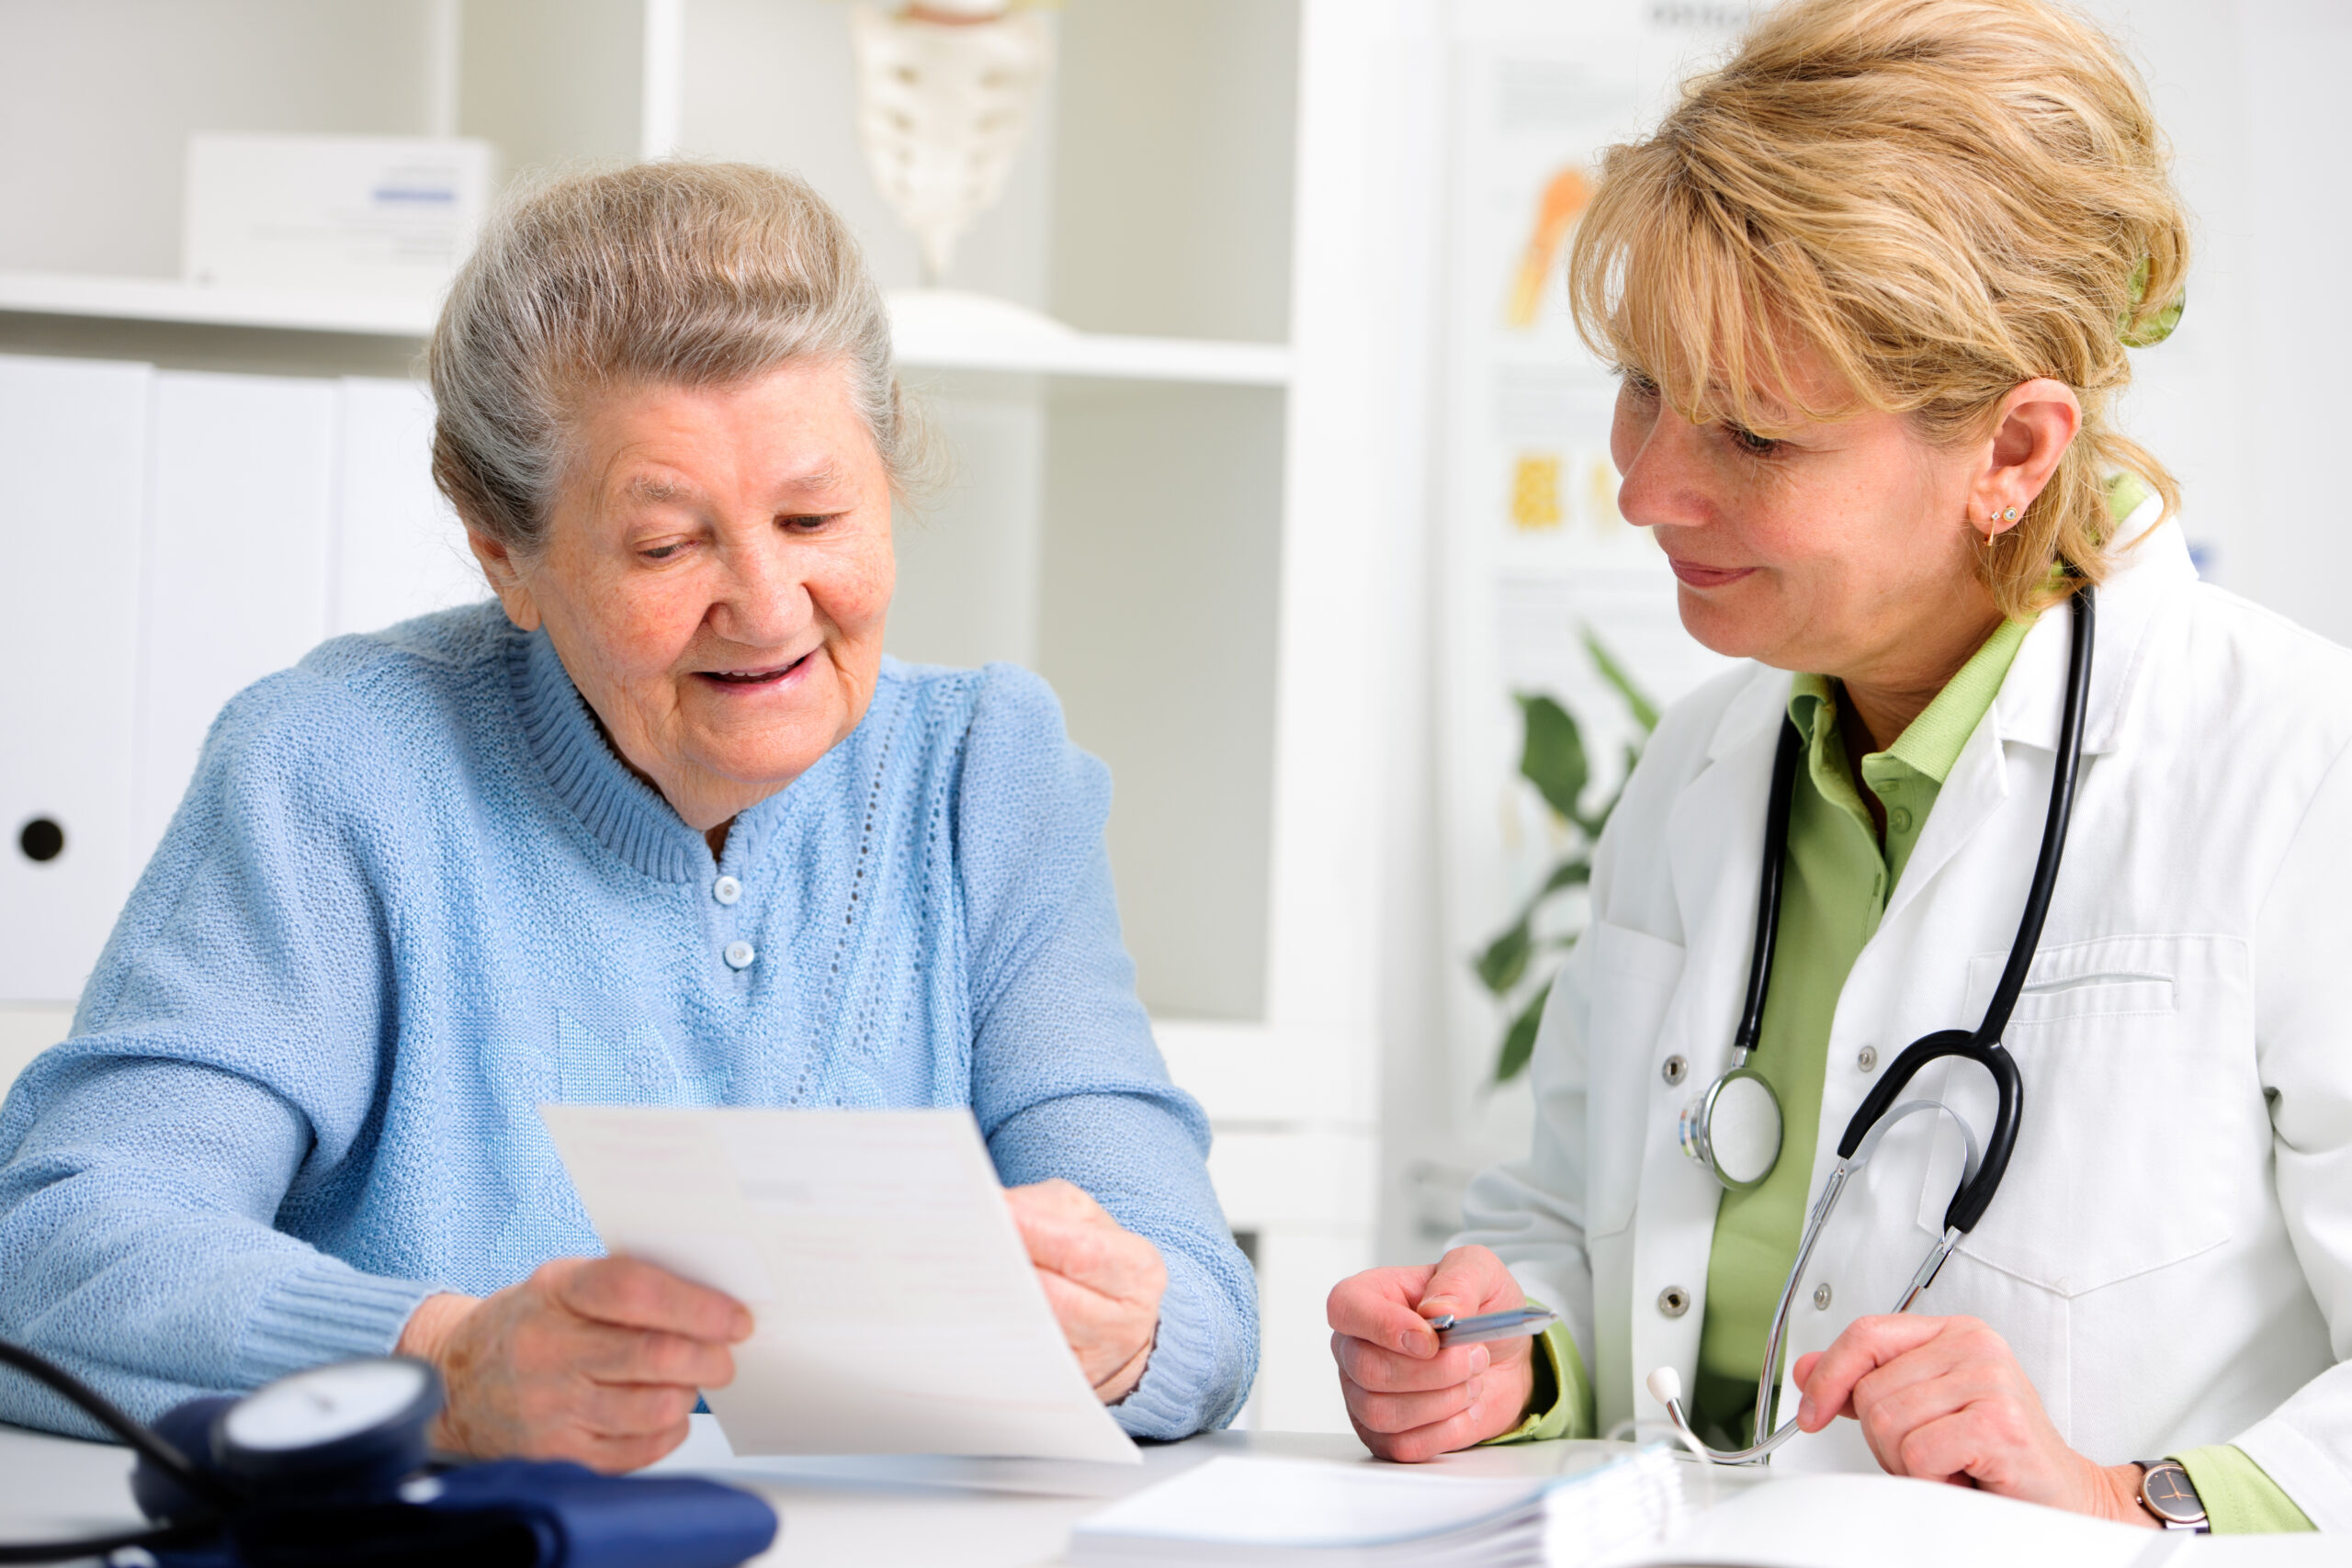 Patient consults physician